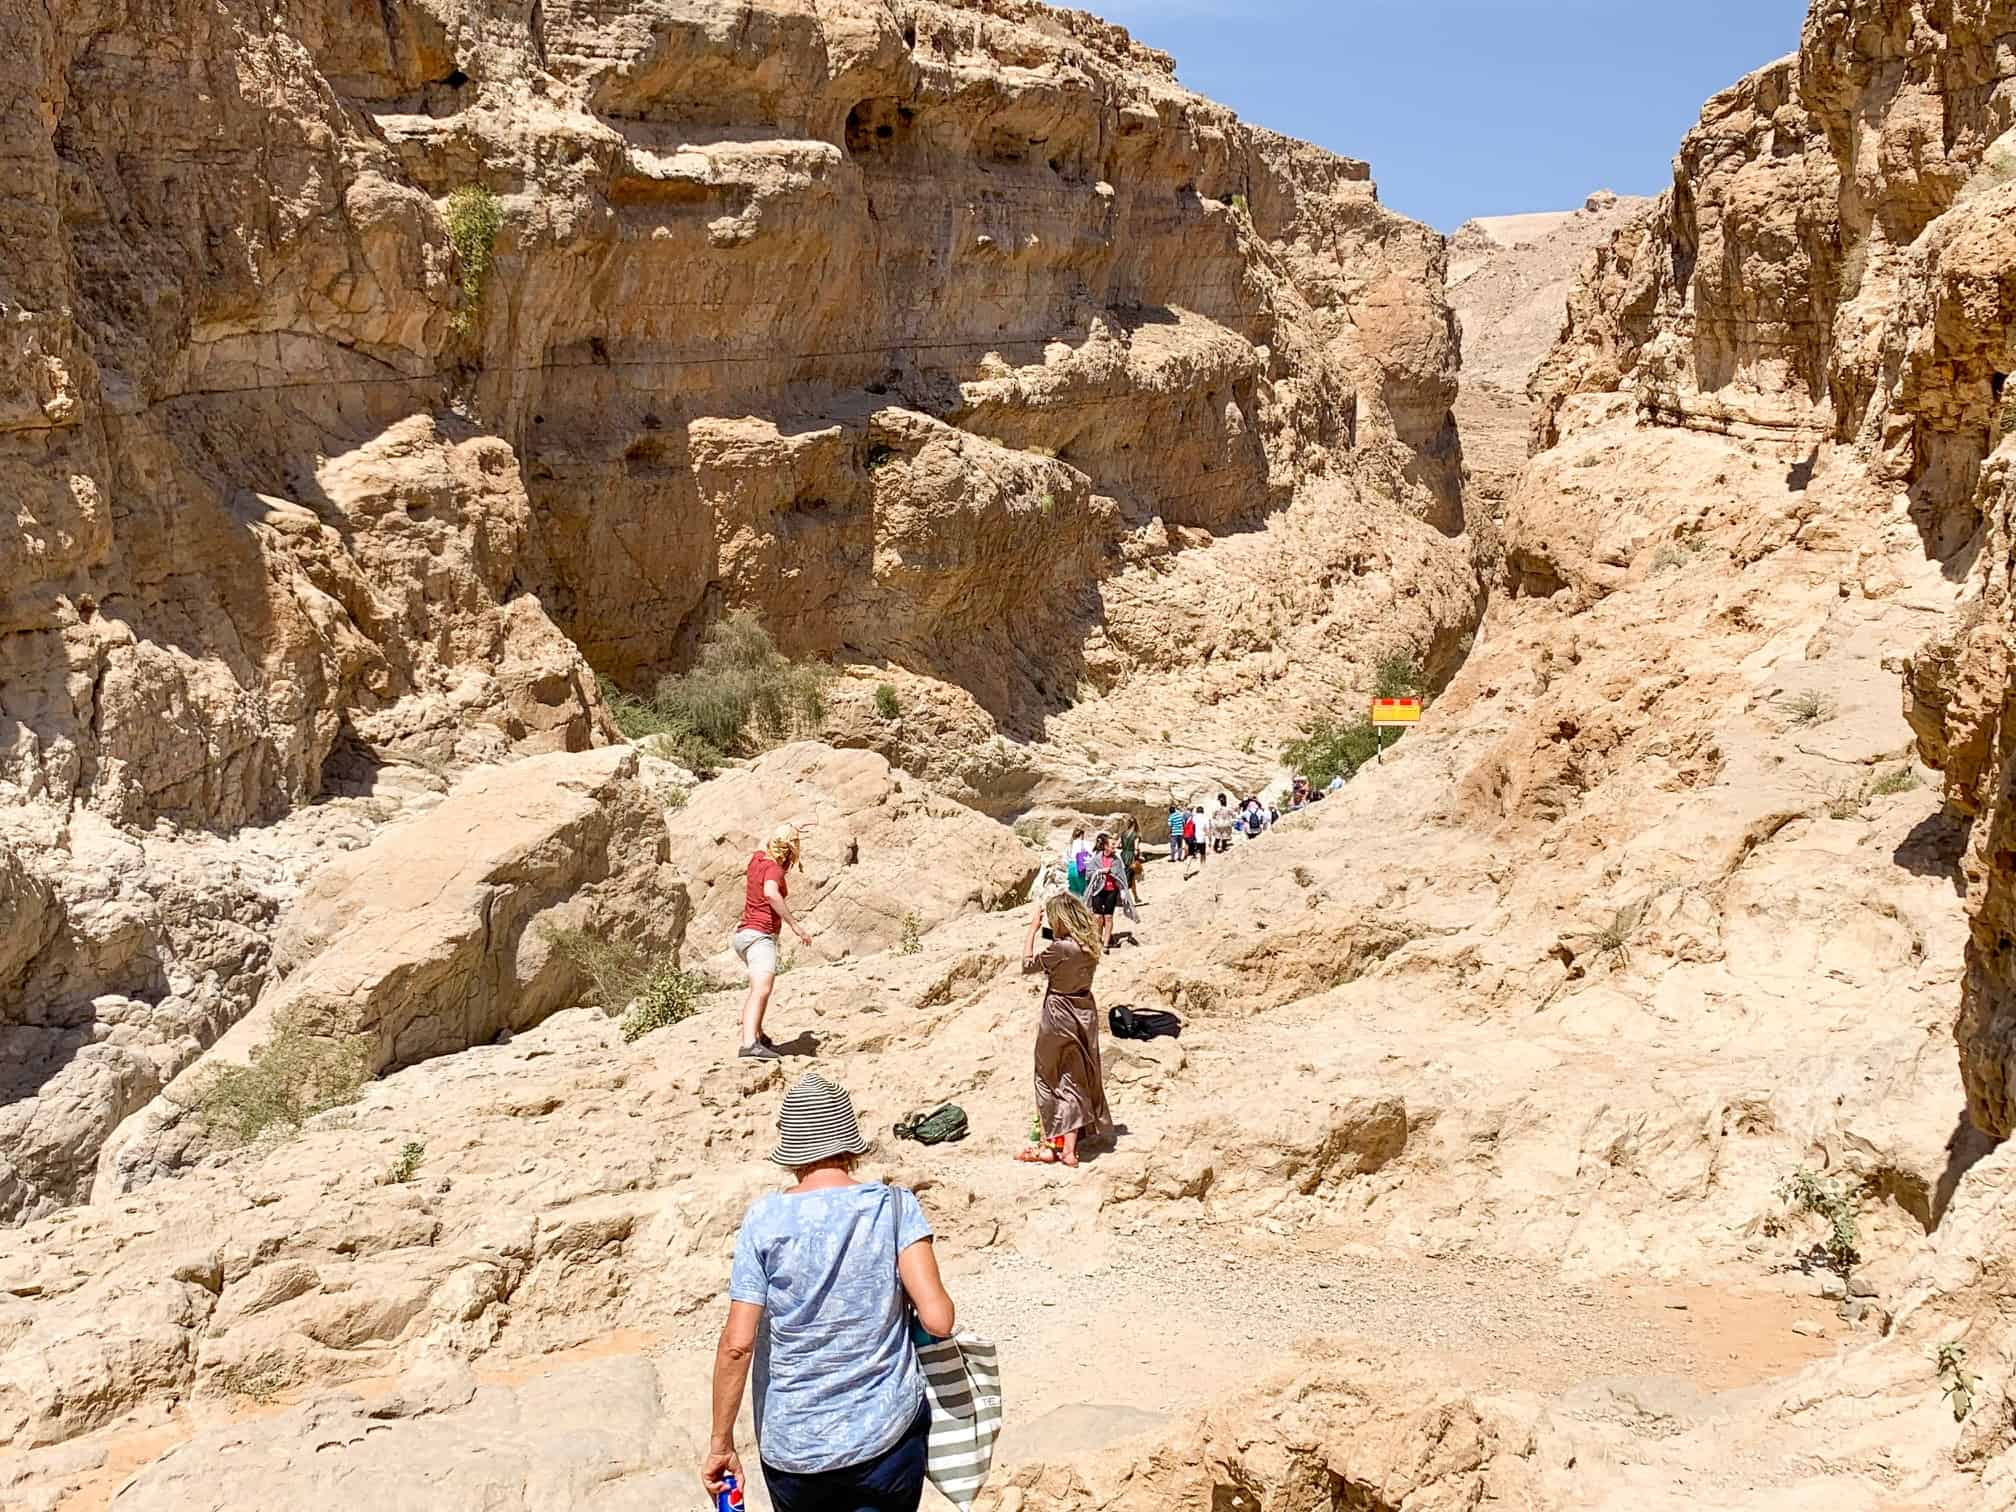 People hiking into Wadi Bani Khalid